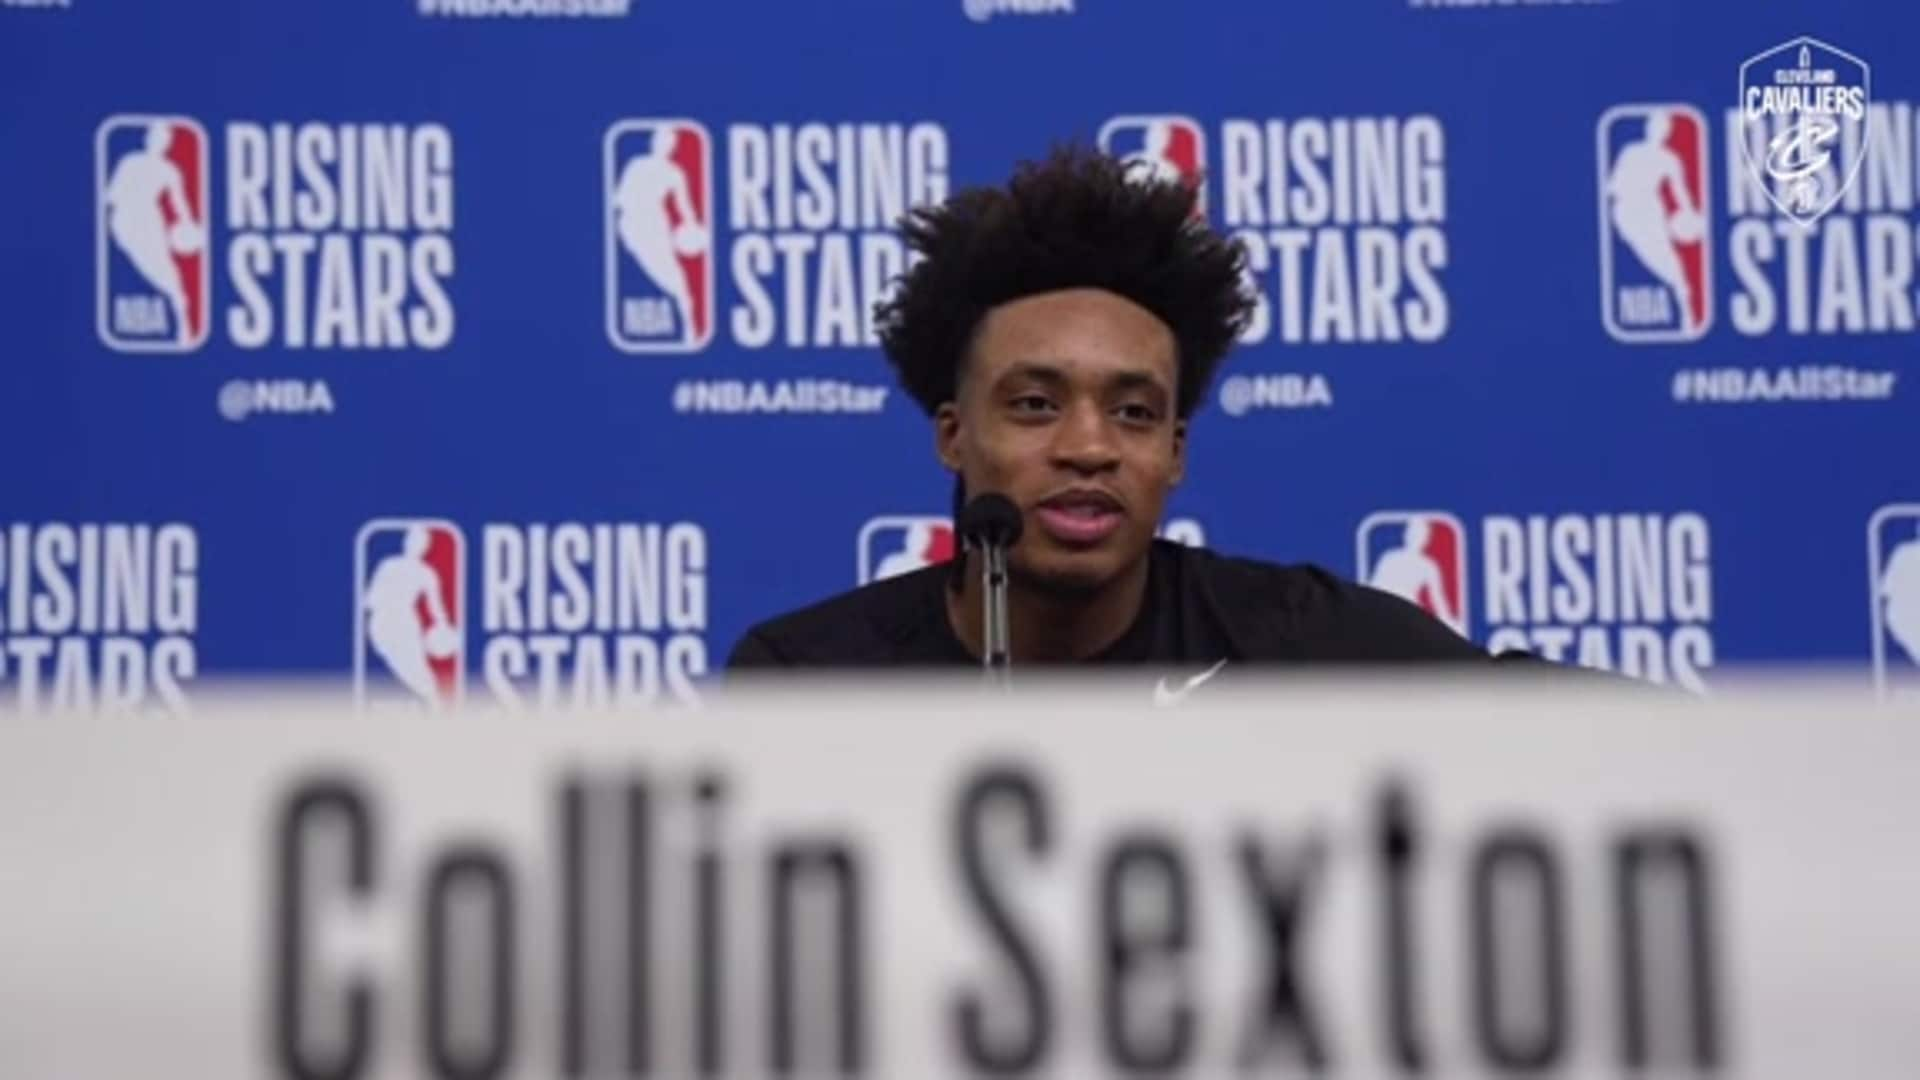 Rising Stars Media Availability - Collin Sexton